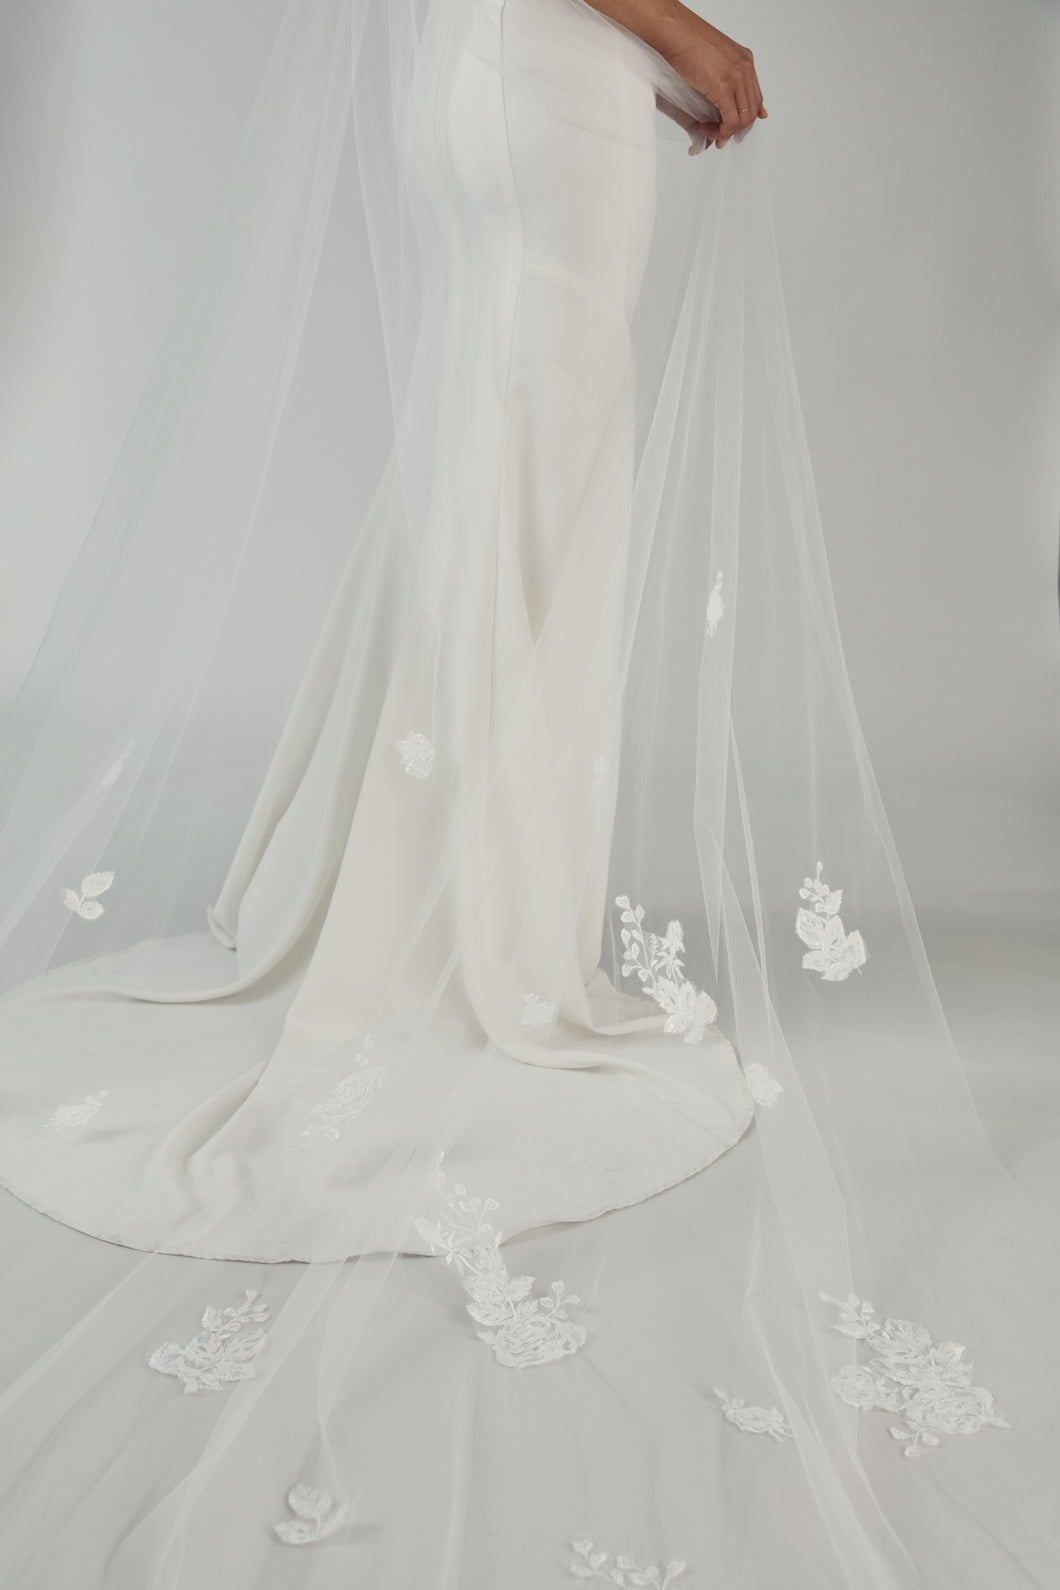 R255U - Cathedral length veil with shimmer lace